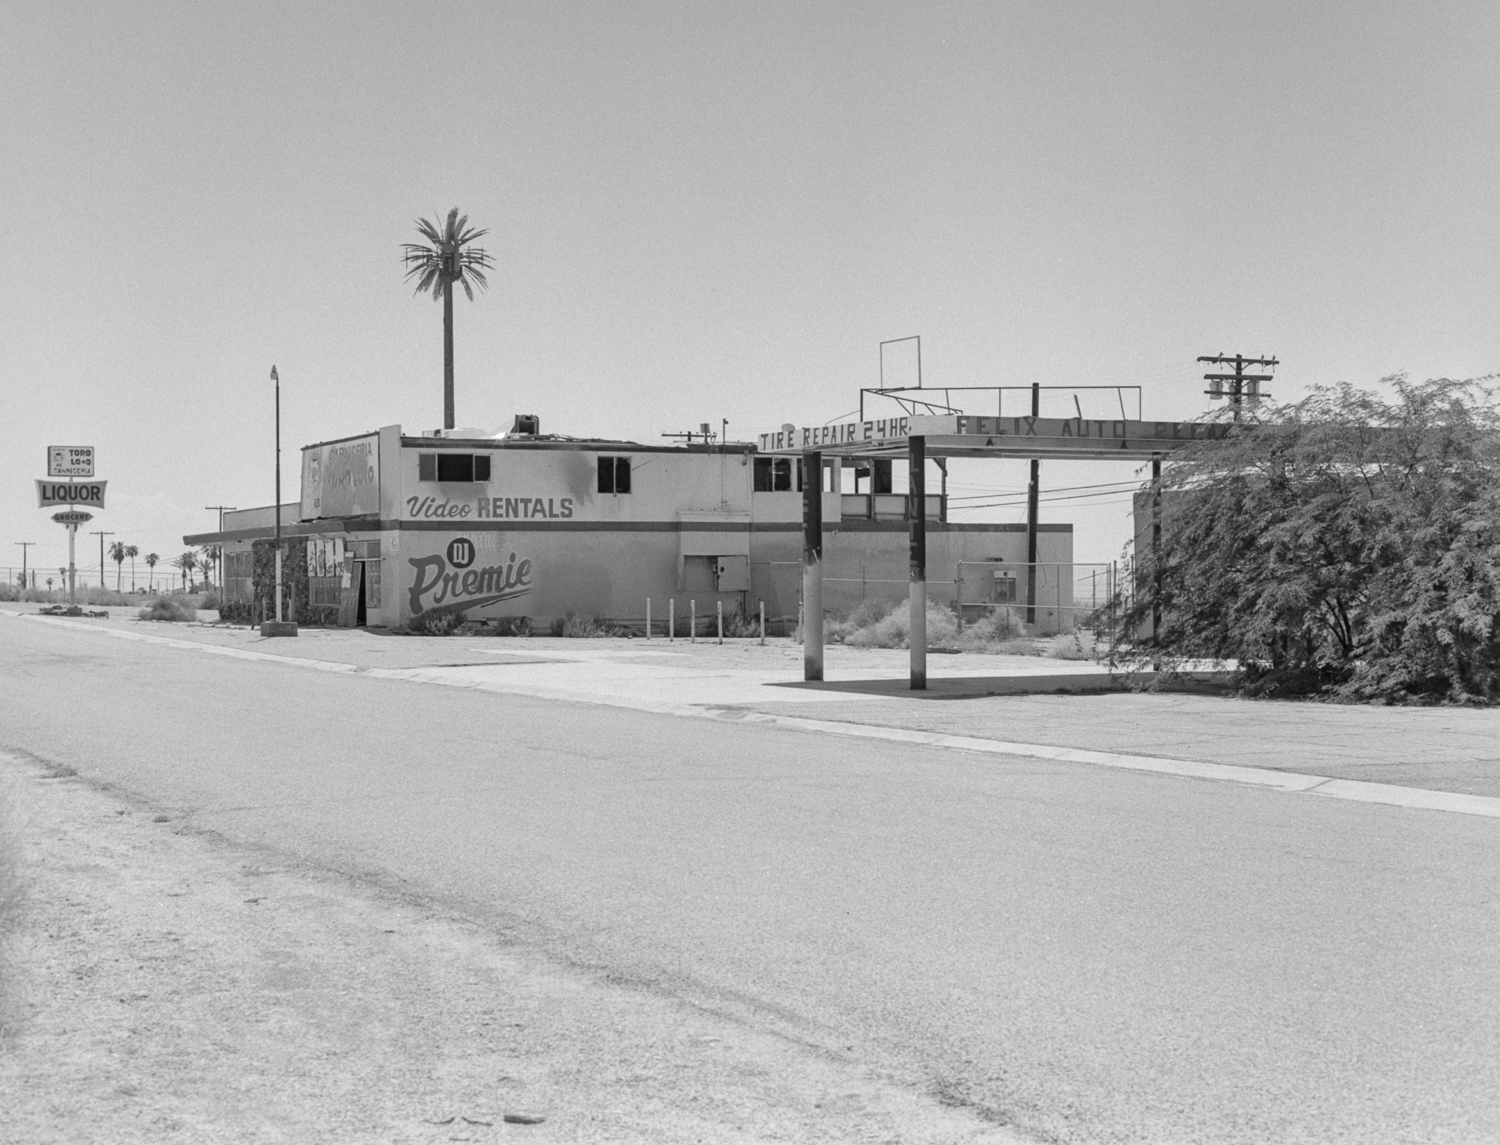 28 Aug 2016, Abandoned gas station and video store near Bombay Beach, Salton Sea, CA. Pentax 645, Tri-X 400, Developed (D76) and Scanned by me.